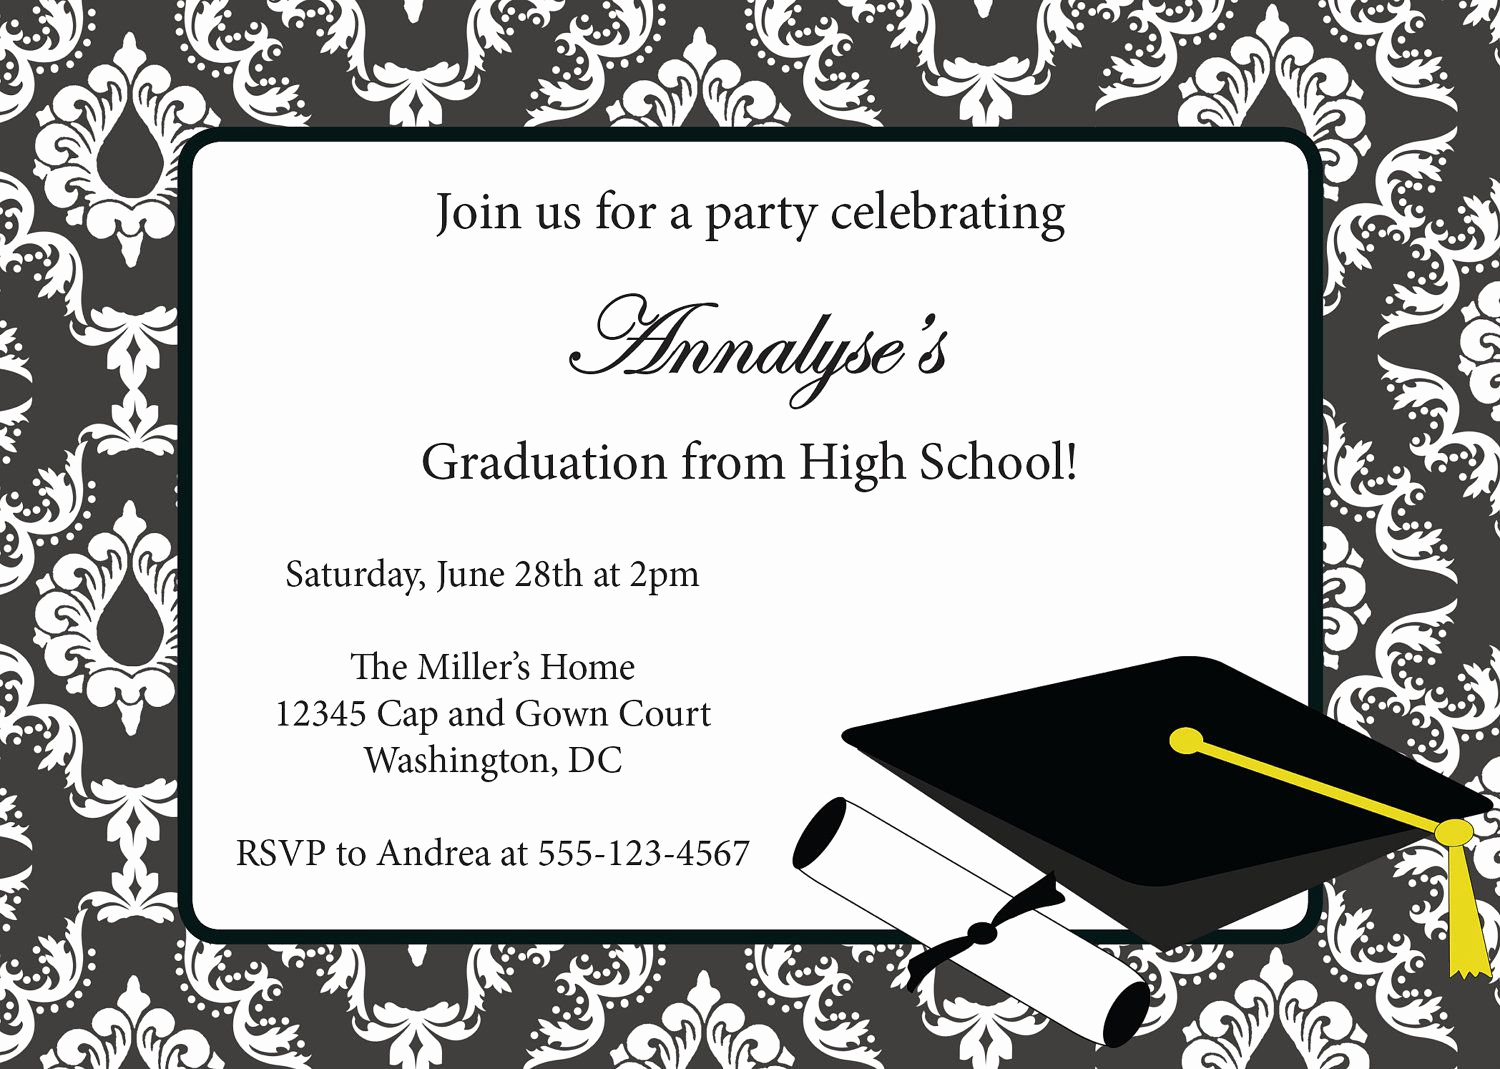 Free Graduation Invitation Templates Inspirational Graduation Invitations Invitation Card for Graduation